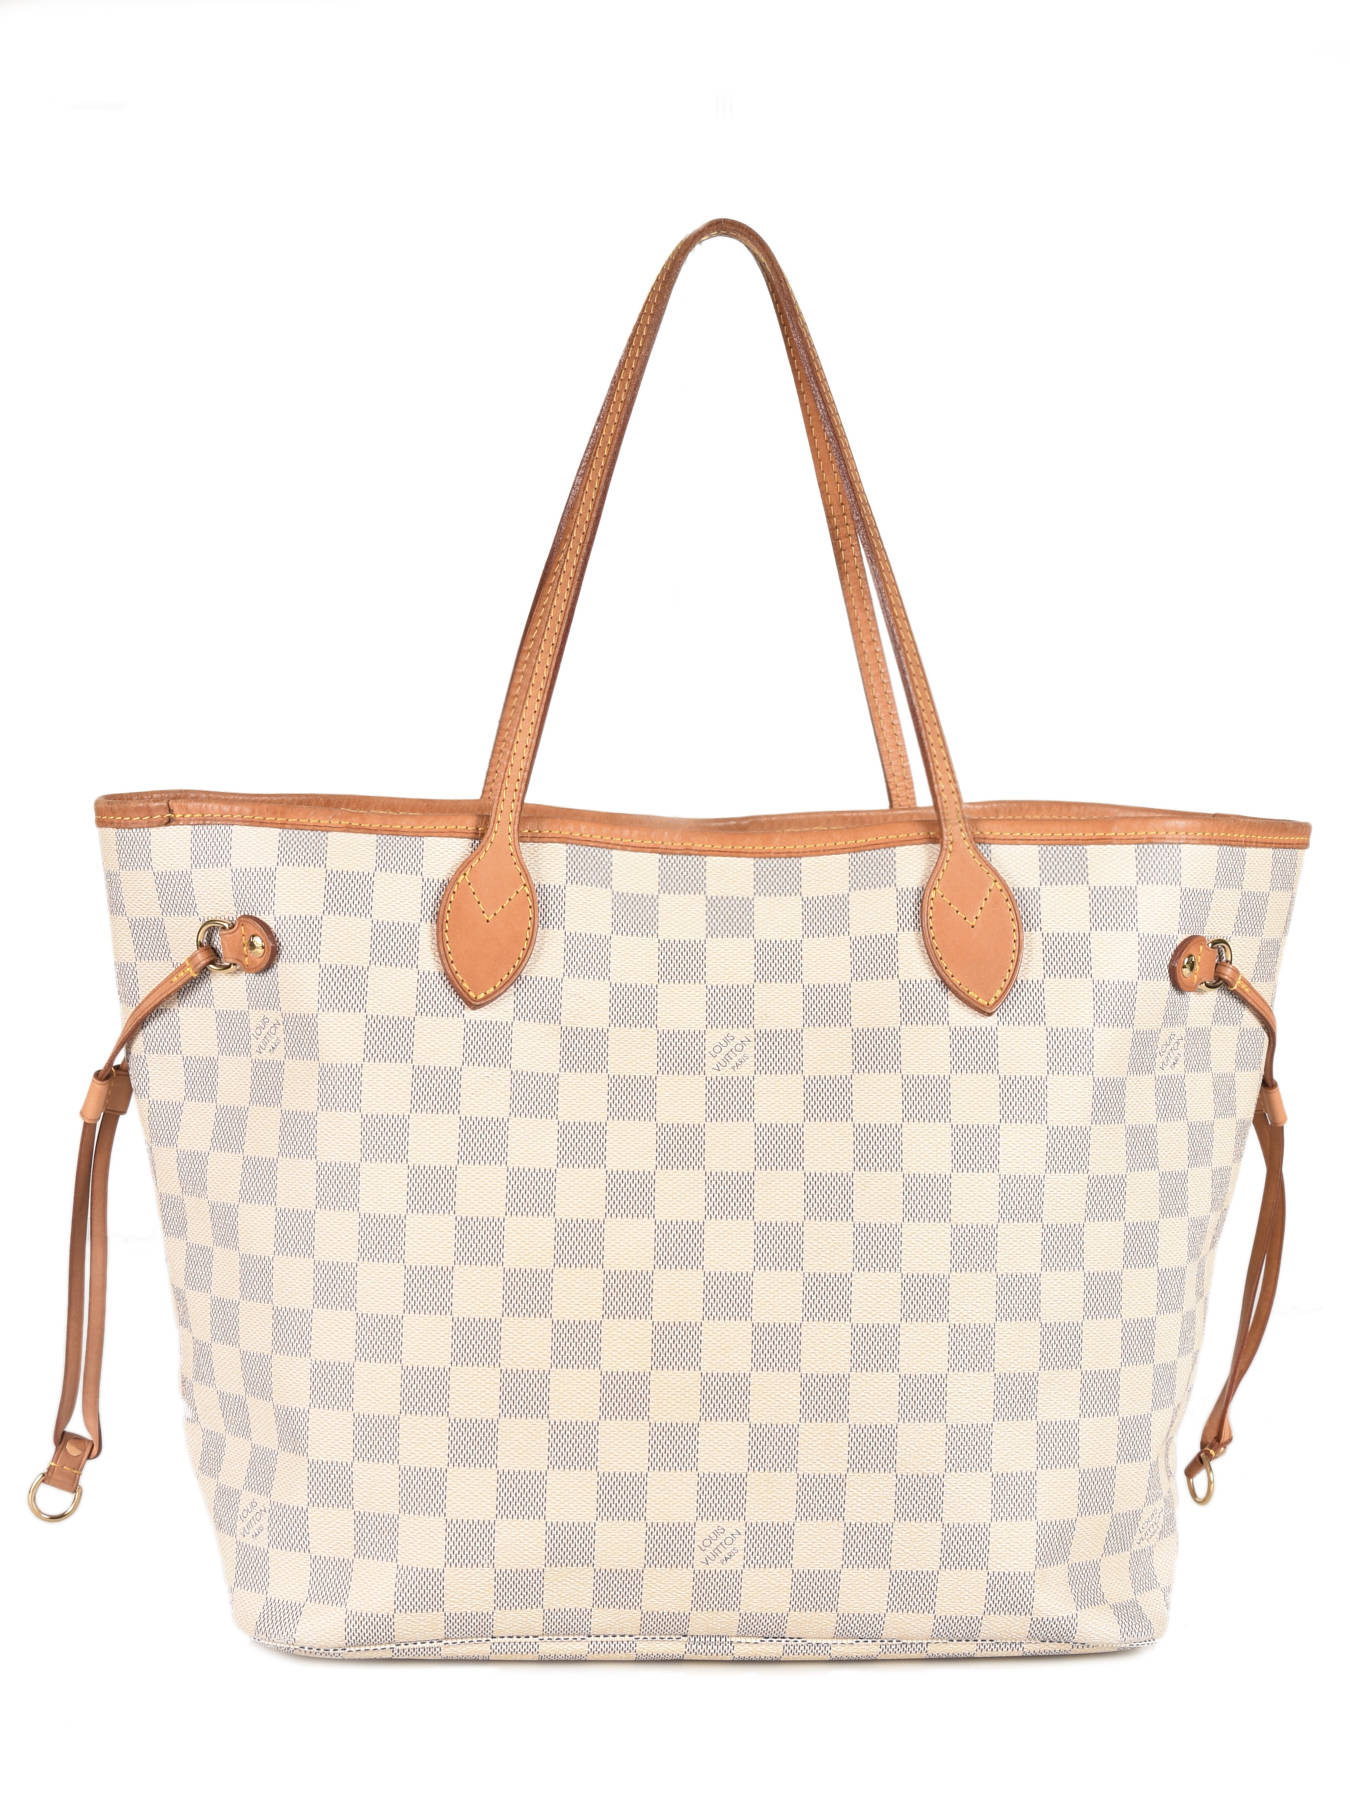 2fd0bacfd5a ... Sac Cabas D occasion Louis Vuitton Neverfull Damier Azur Brand  connection Bleu louis vuitton ...